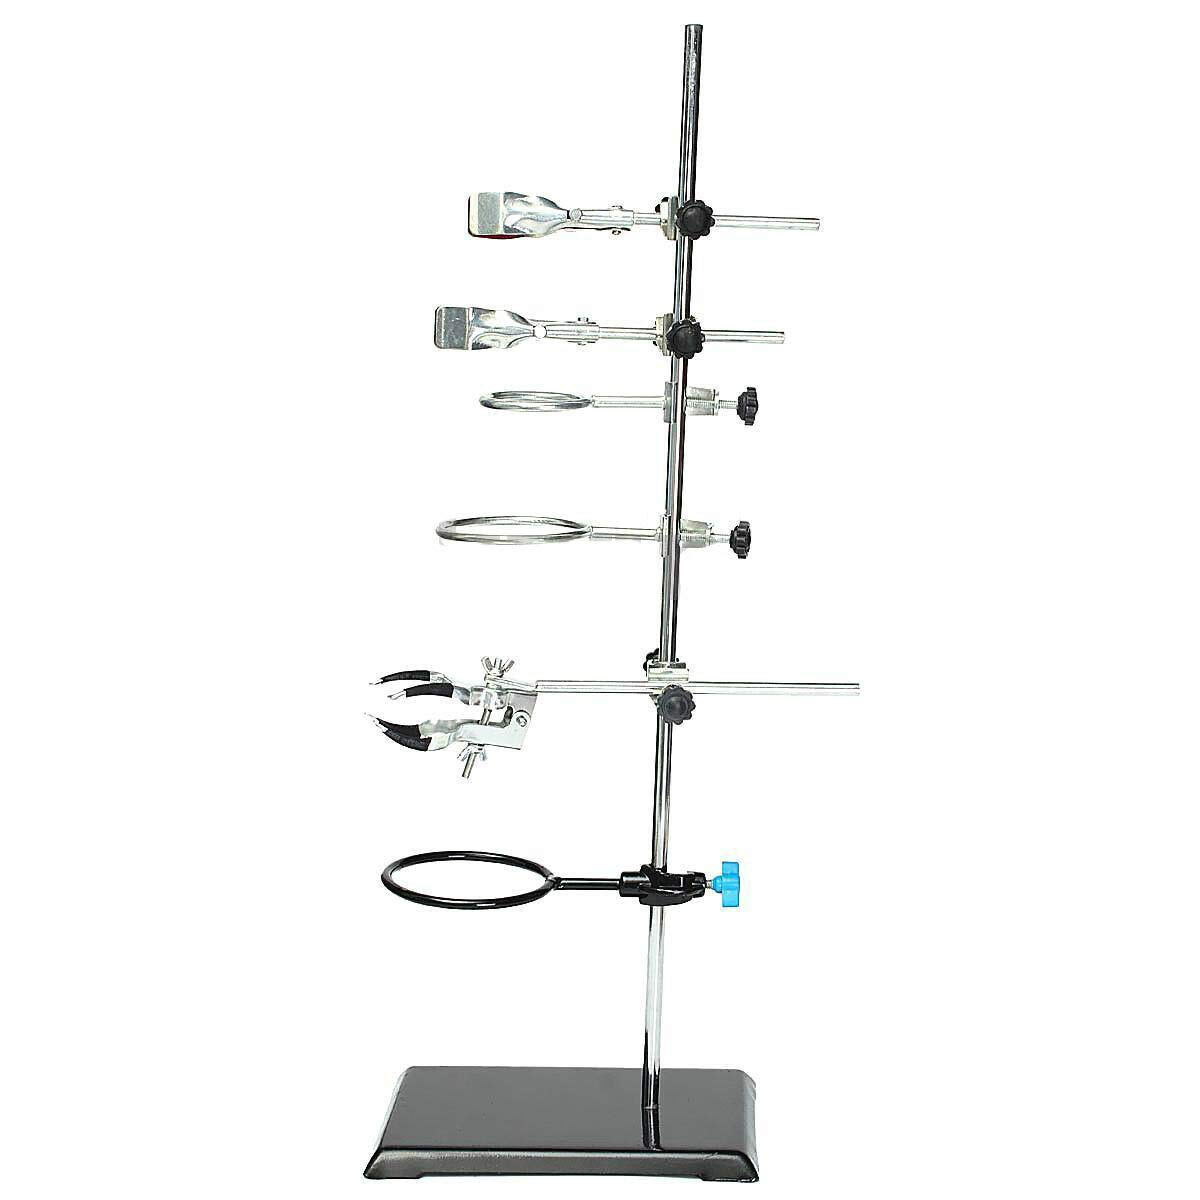 Laboratory Support Stand Pole Flask Condenser Lab Clamp Clips Set Holder 60cm (60cm) by Senderpick